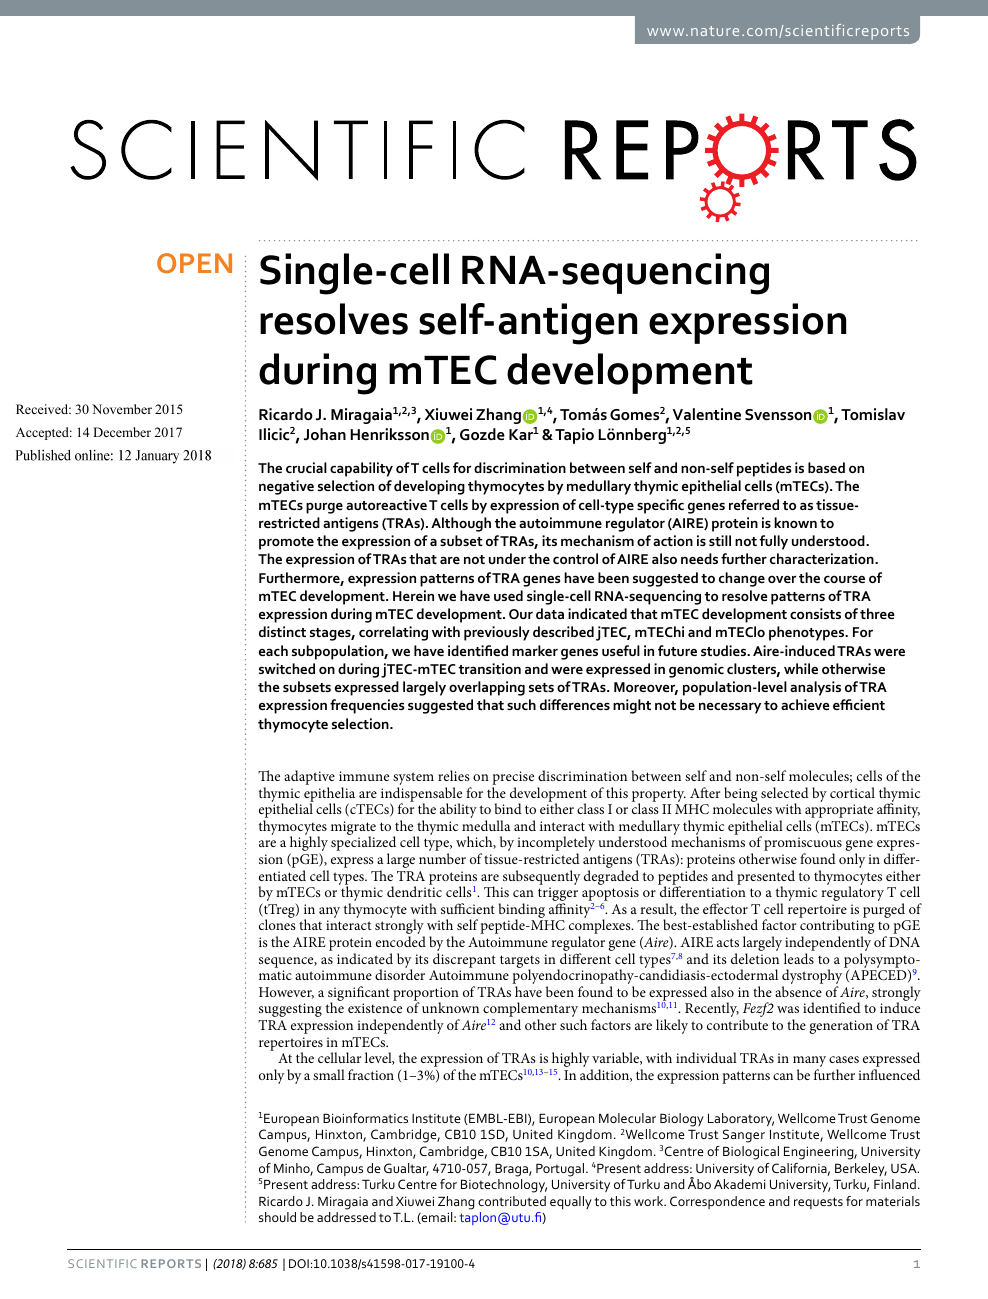 Single-cell RNA-sequencing resolves self-antigen expression